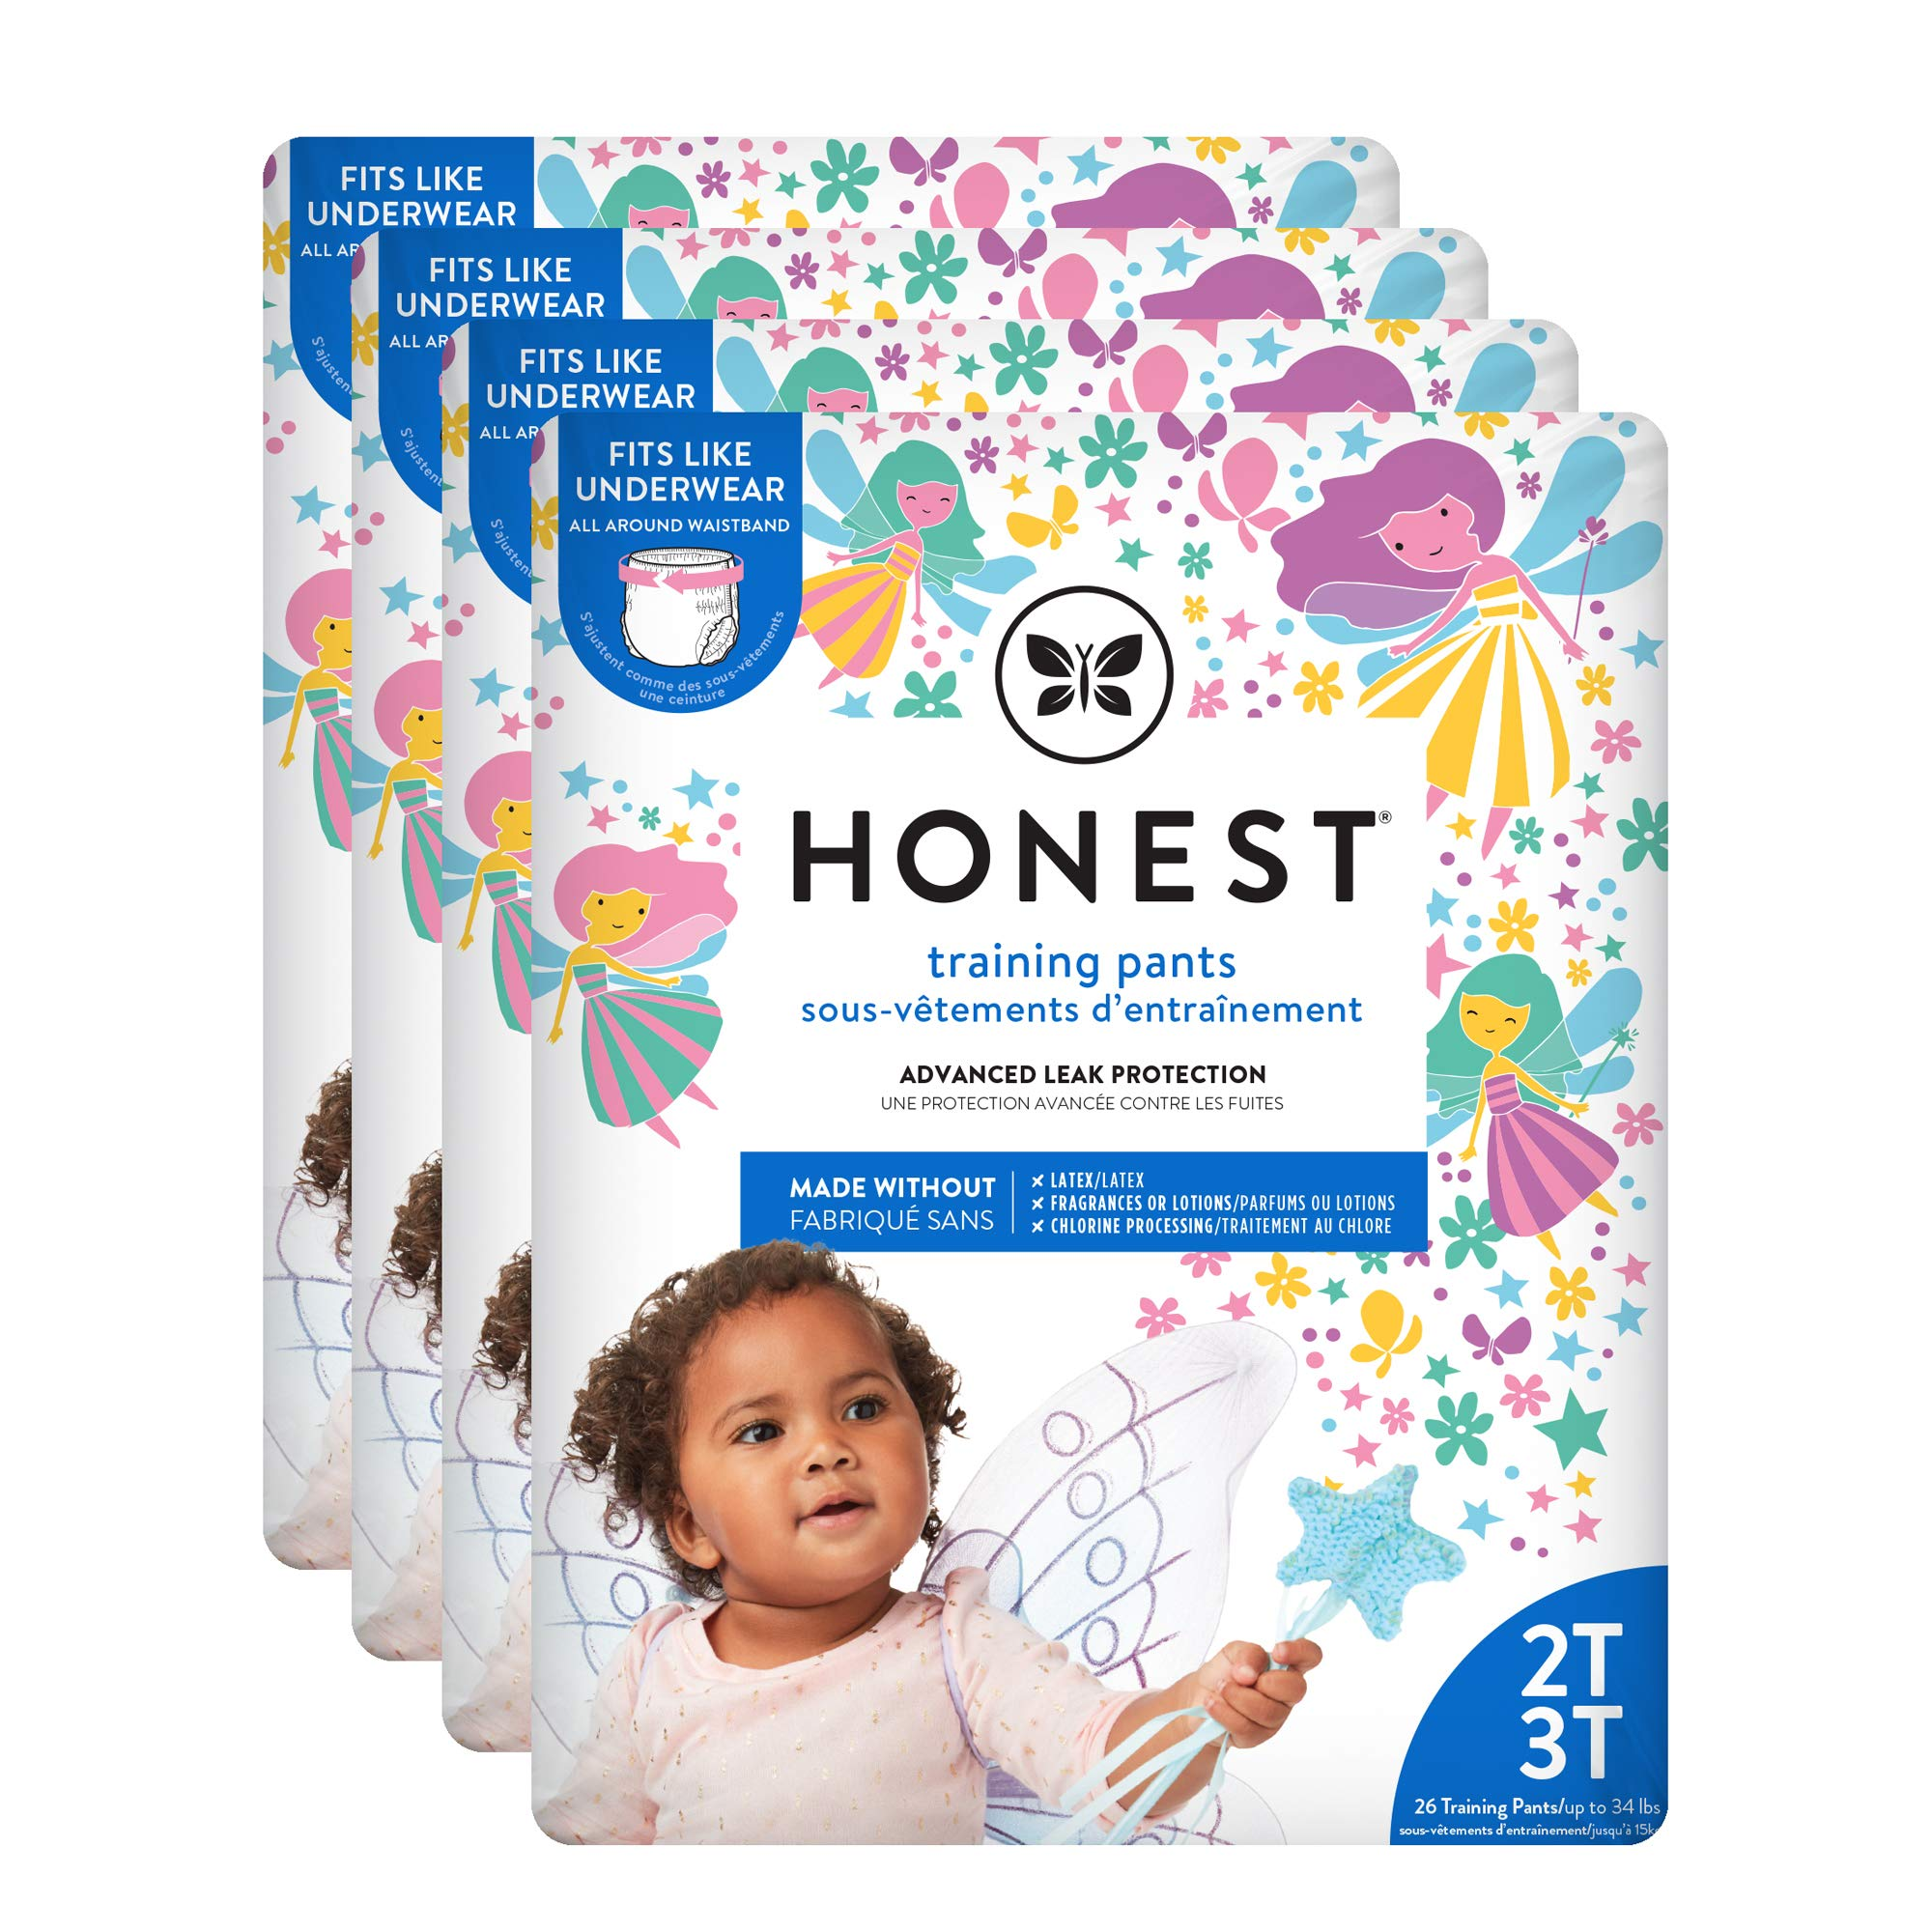 The Honest Company Toddler Training Pants   Fairies   2T/3T   104 Count   Eco-Friendly   Underwear-Like Fit   Stretchy Waistband & Tearaway Sides   Perfect for Potty Training